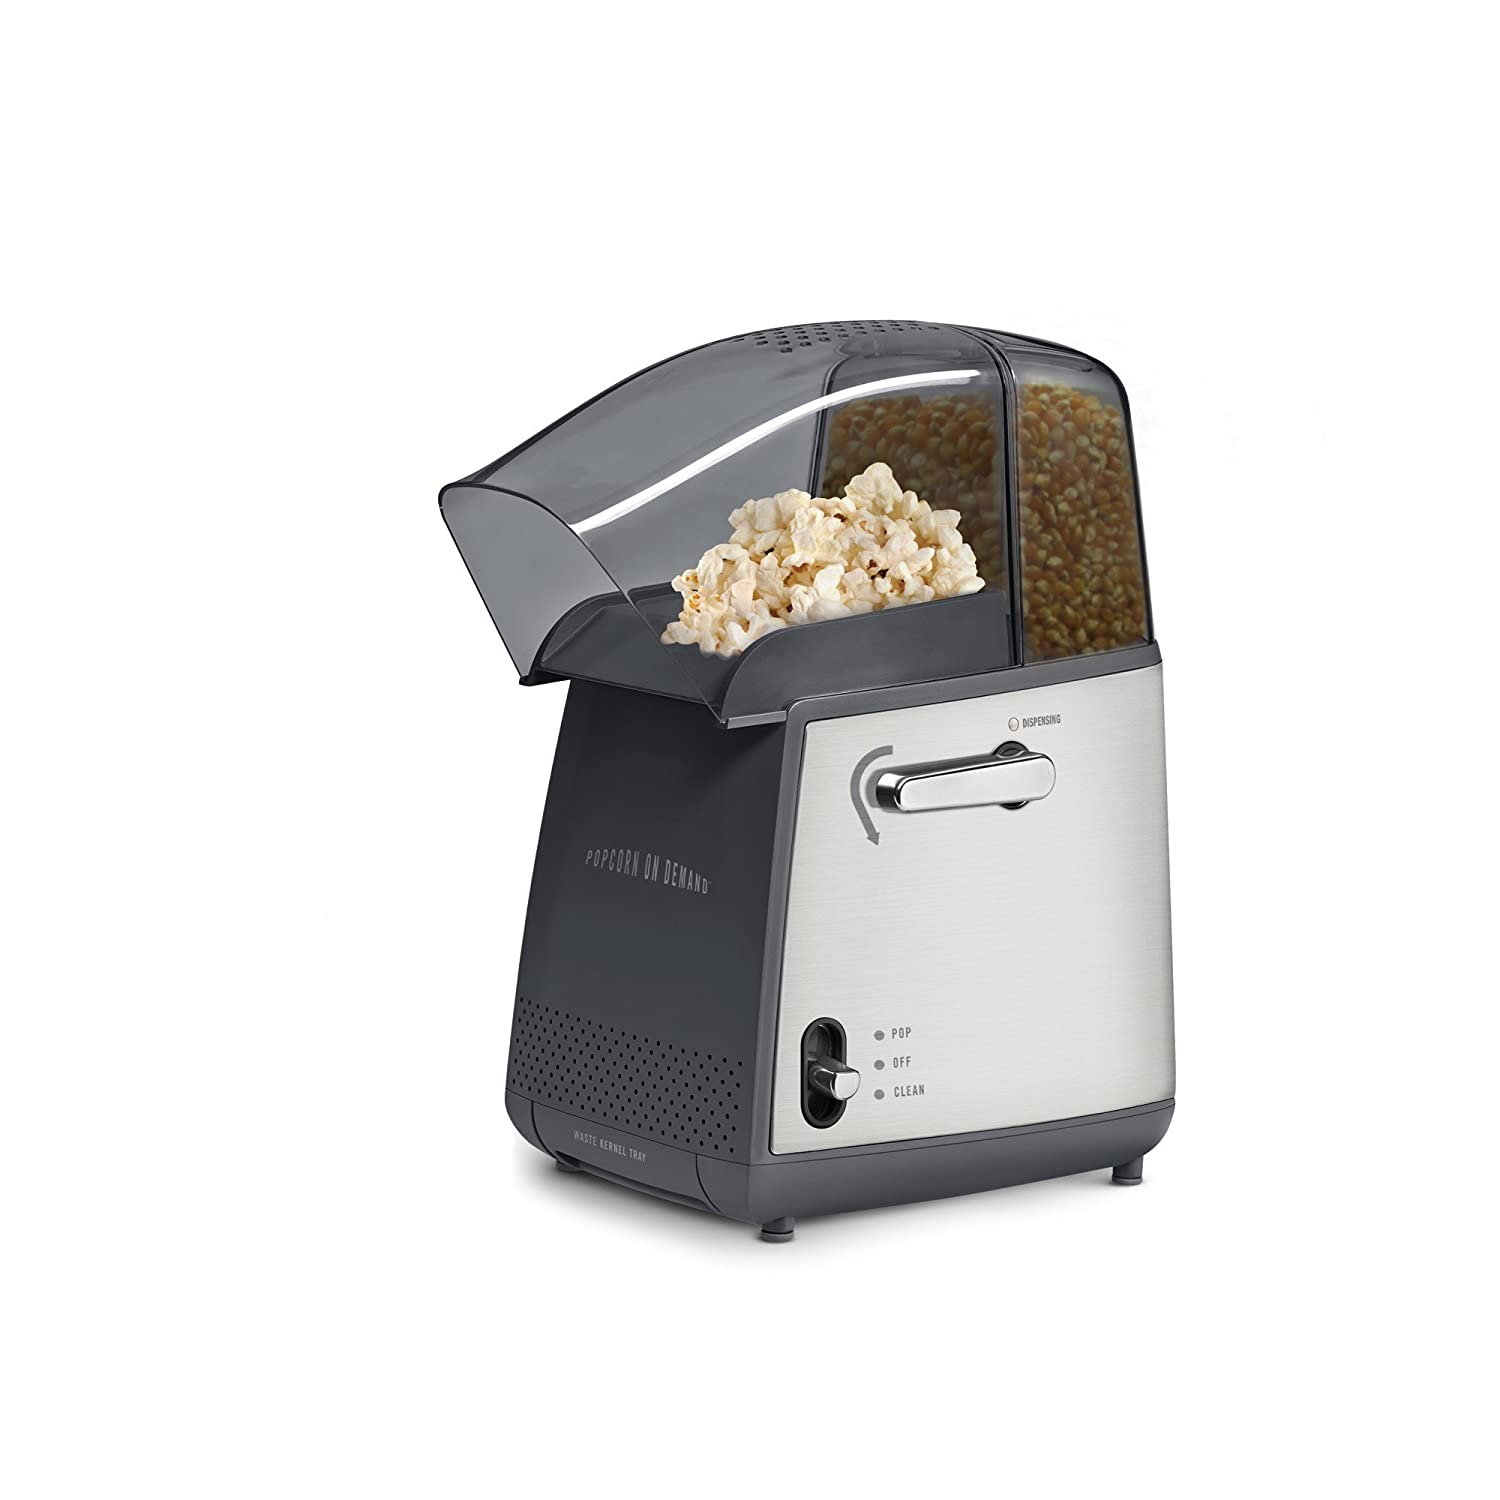 West Bend 82700 Popcorn on Demand Hot Air Popcorn Popper Machine Pops Up to 4-Quarts Popcorn Using Hot Air Portion Control Lever and Cleaning Cycle, Silver